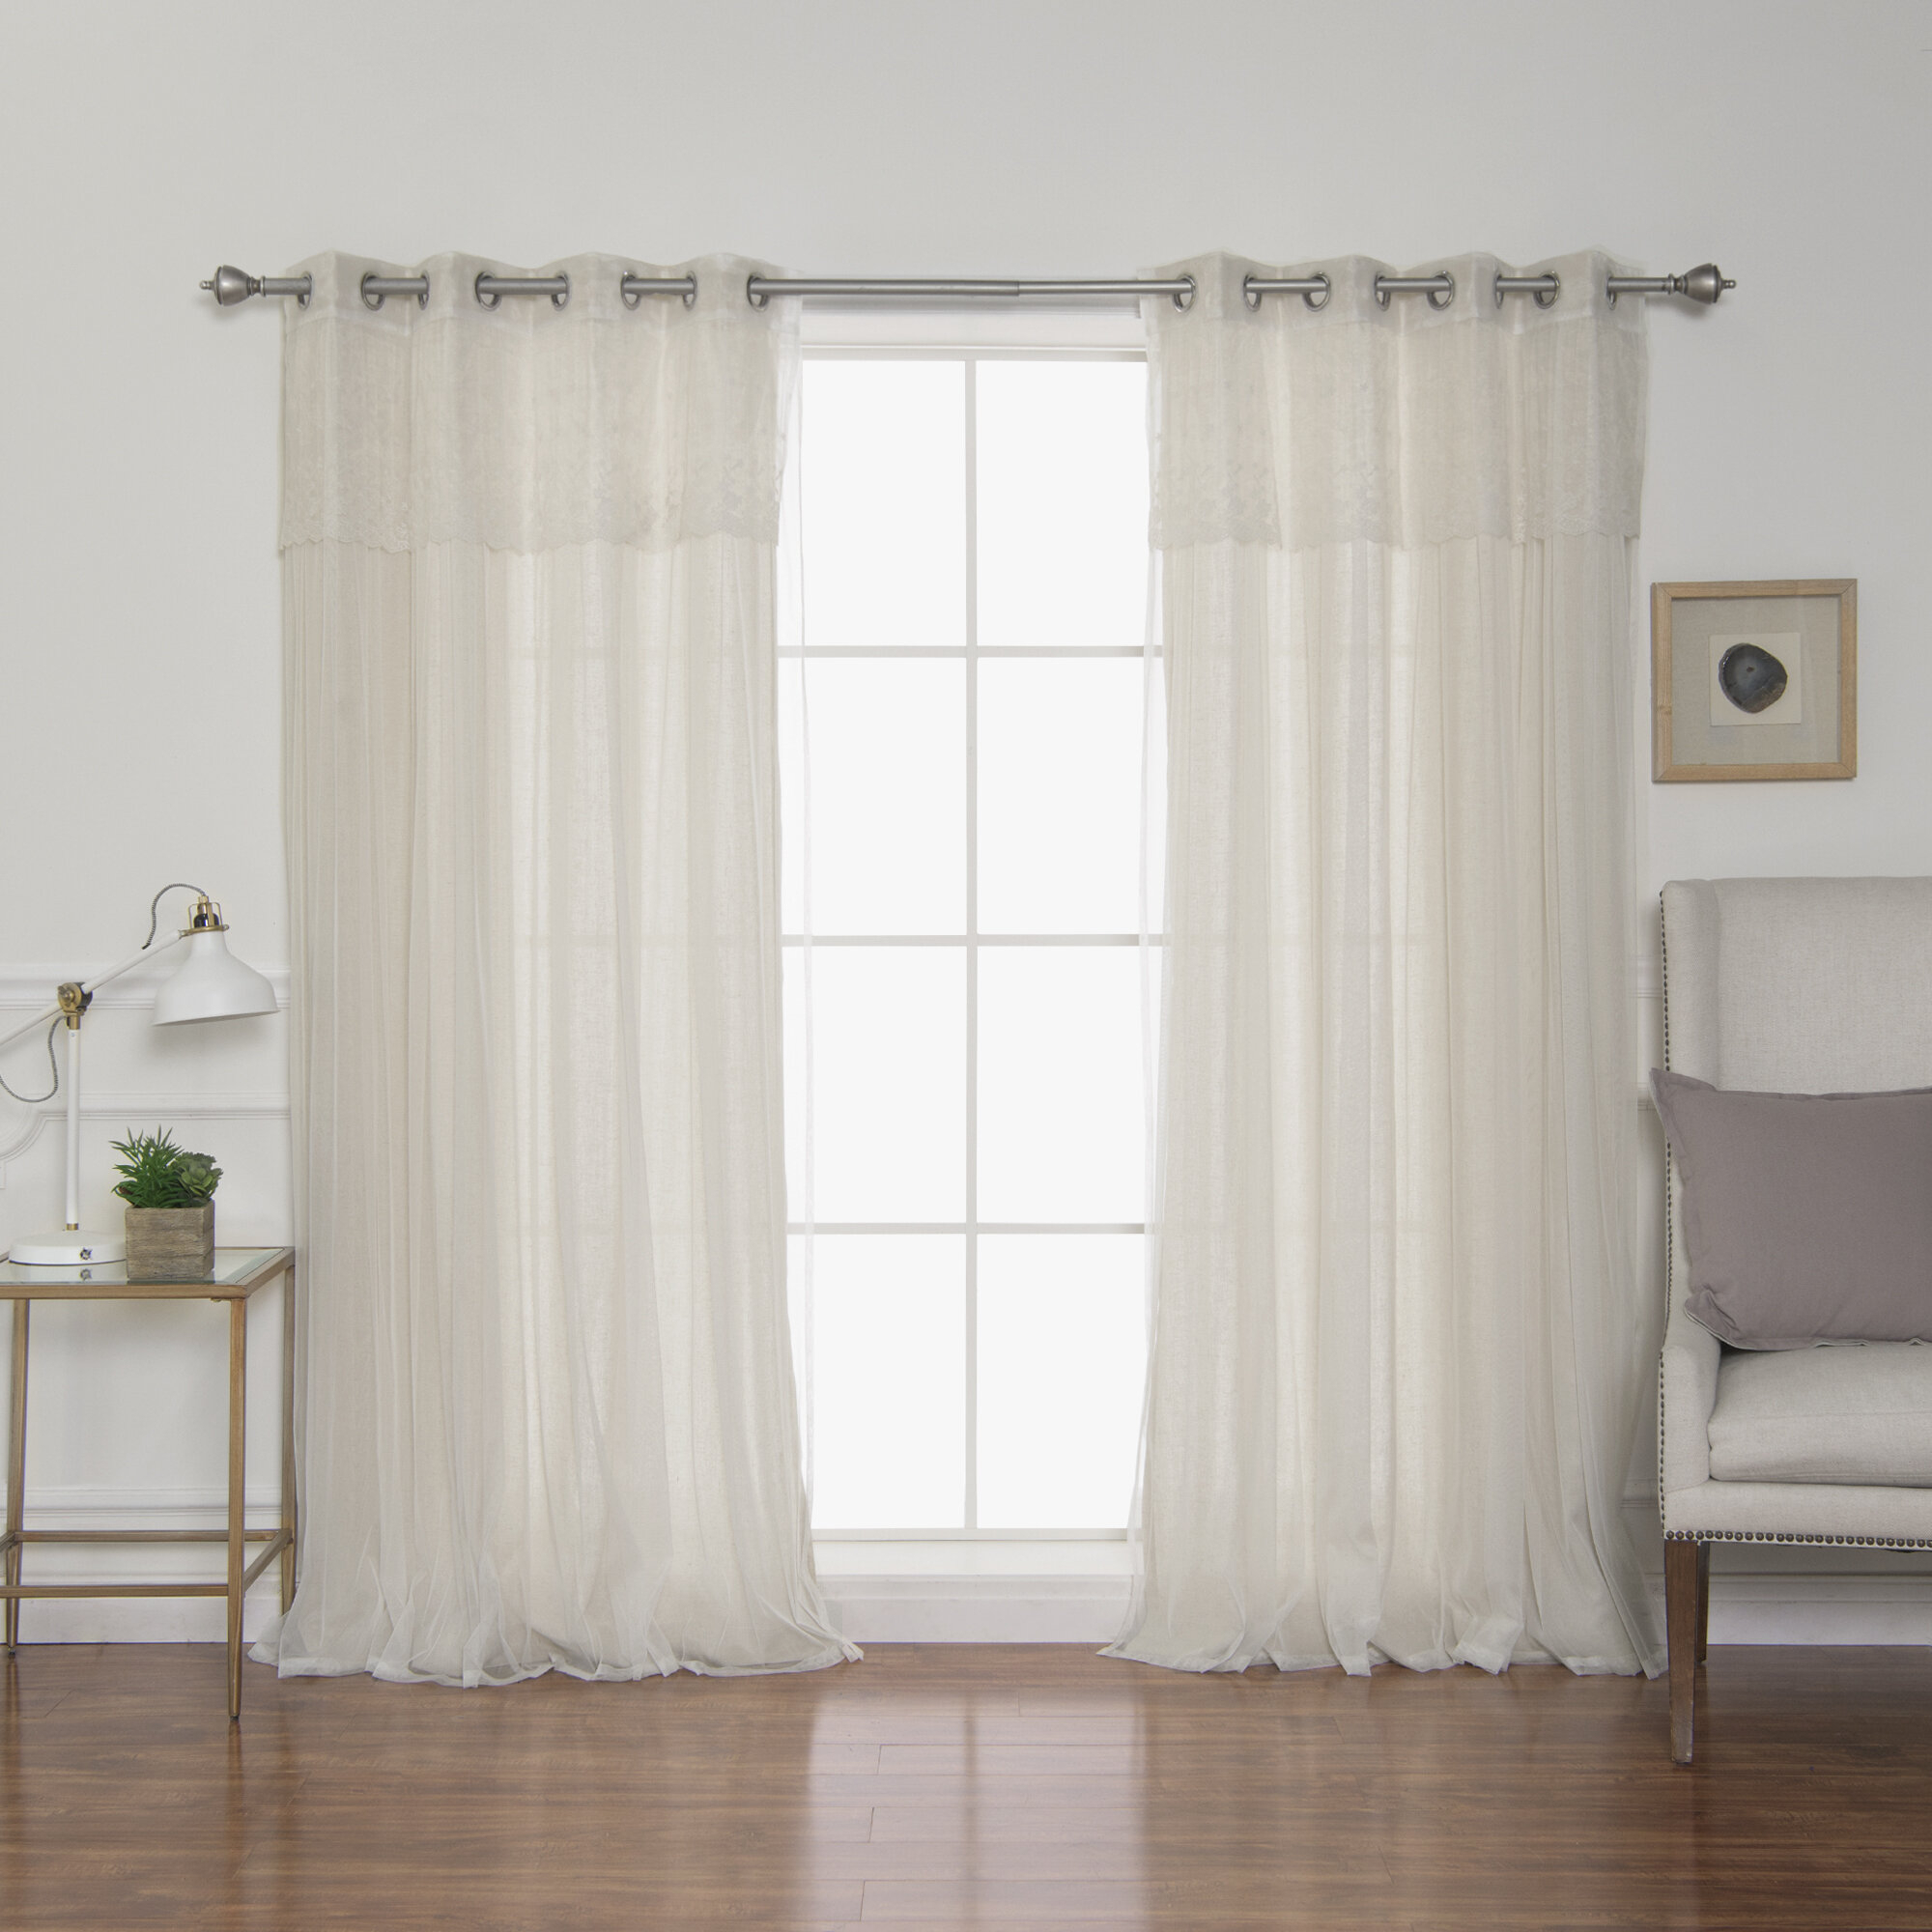 Alers Solid Semi Sheer Grommet Curtain Panels Within Tulle Sheer With Attached Valance And Blackout 4 Piece Curtain Panel Pairs (View 11 of 30)